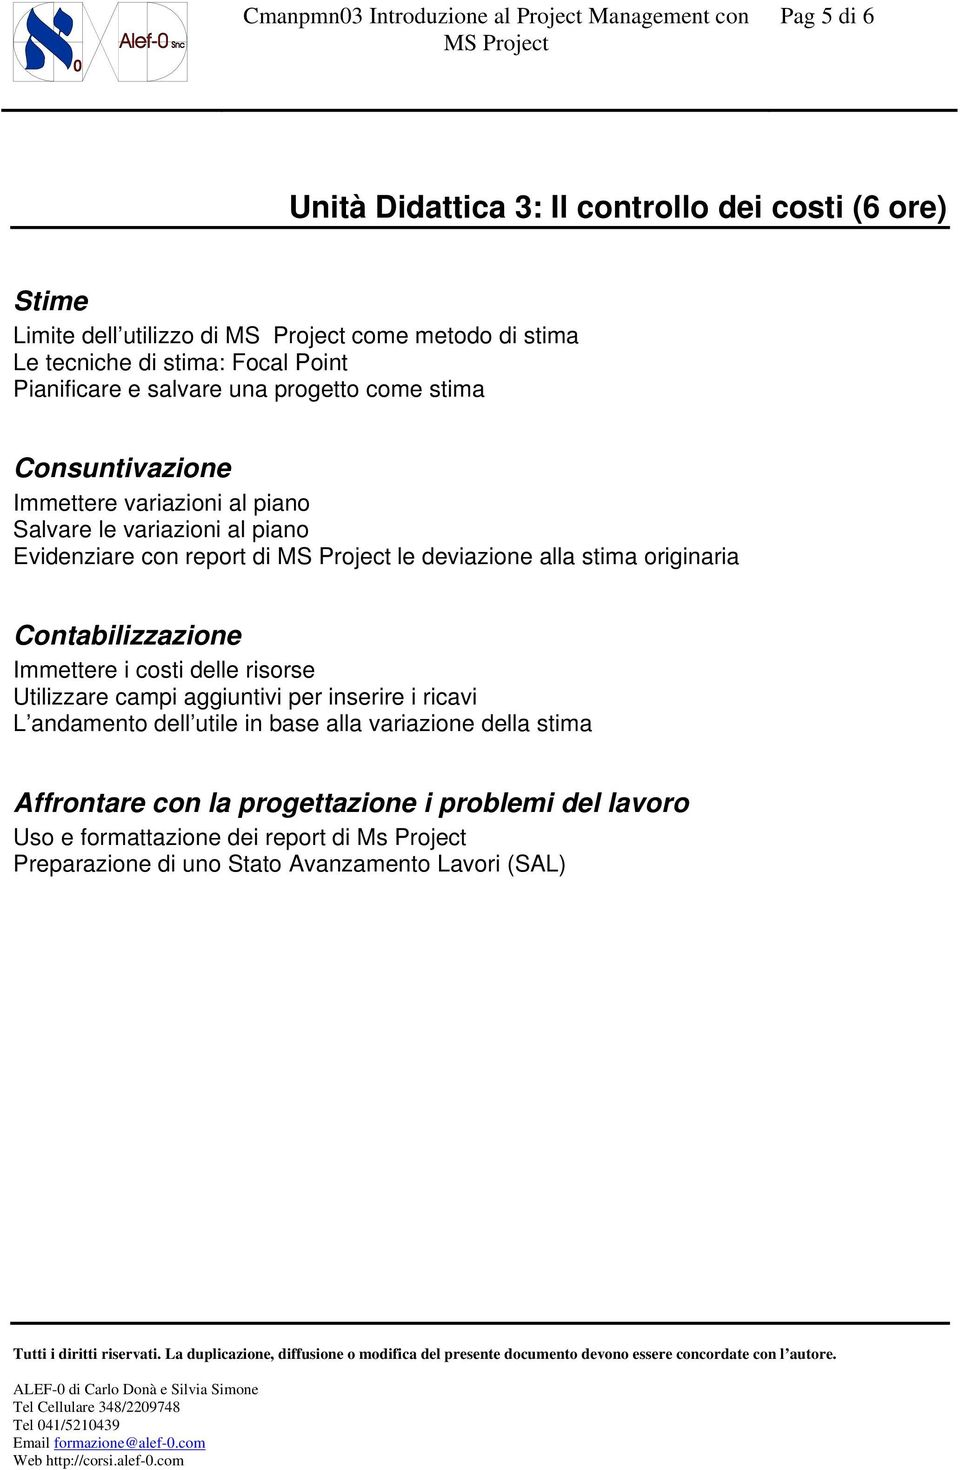 Introduzione al project management con ms project pdf for Garage con stima dei costi dell appartamento